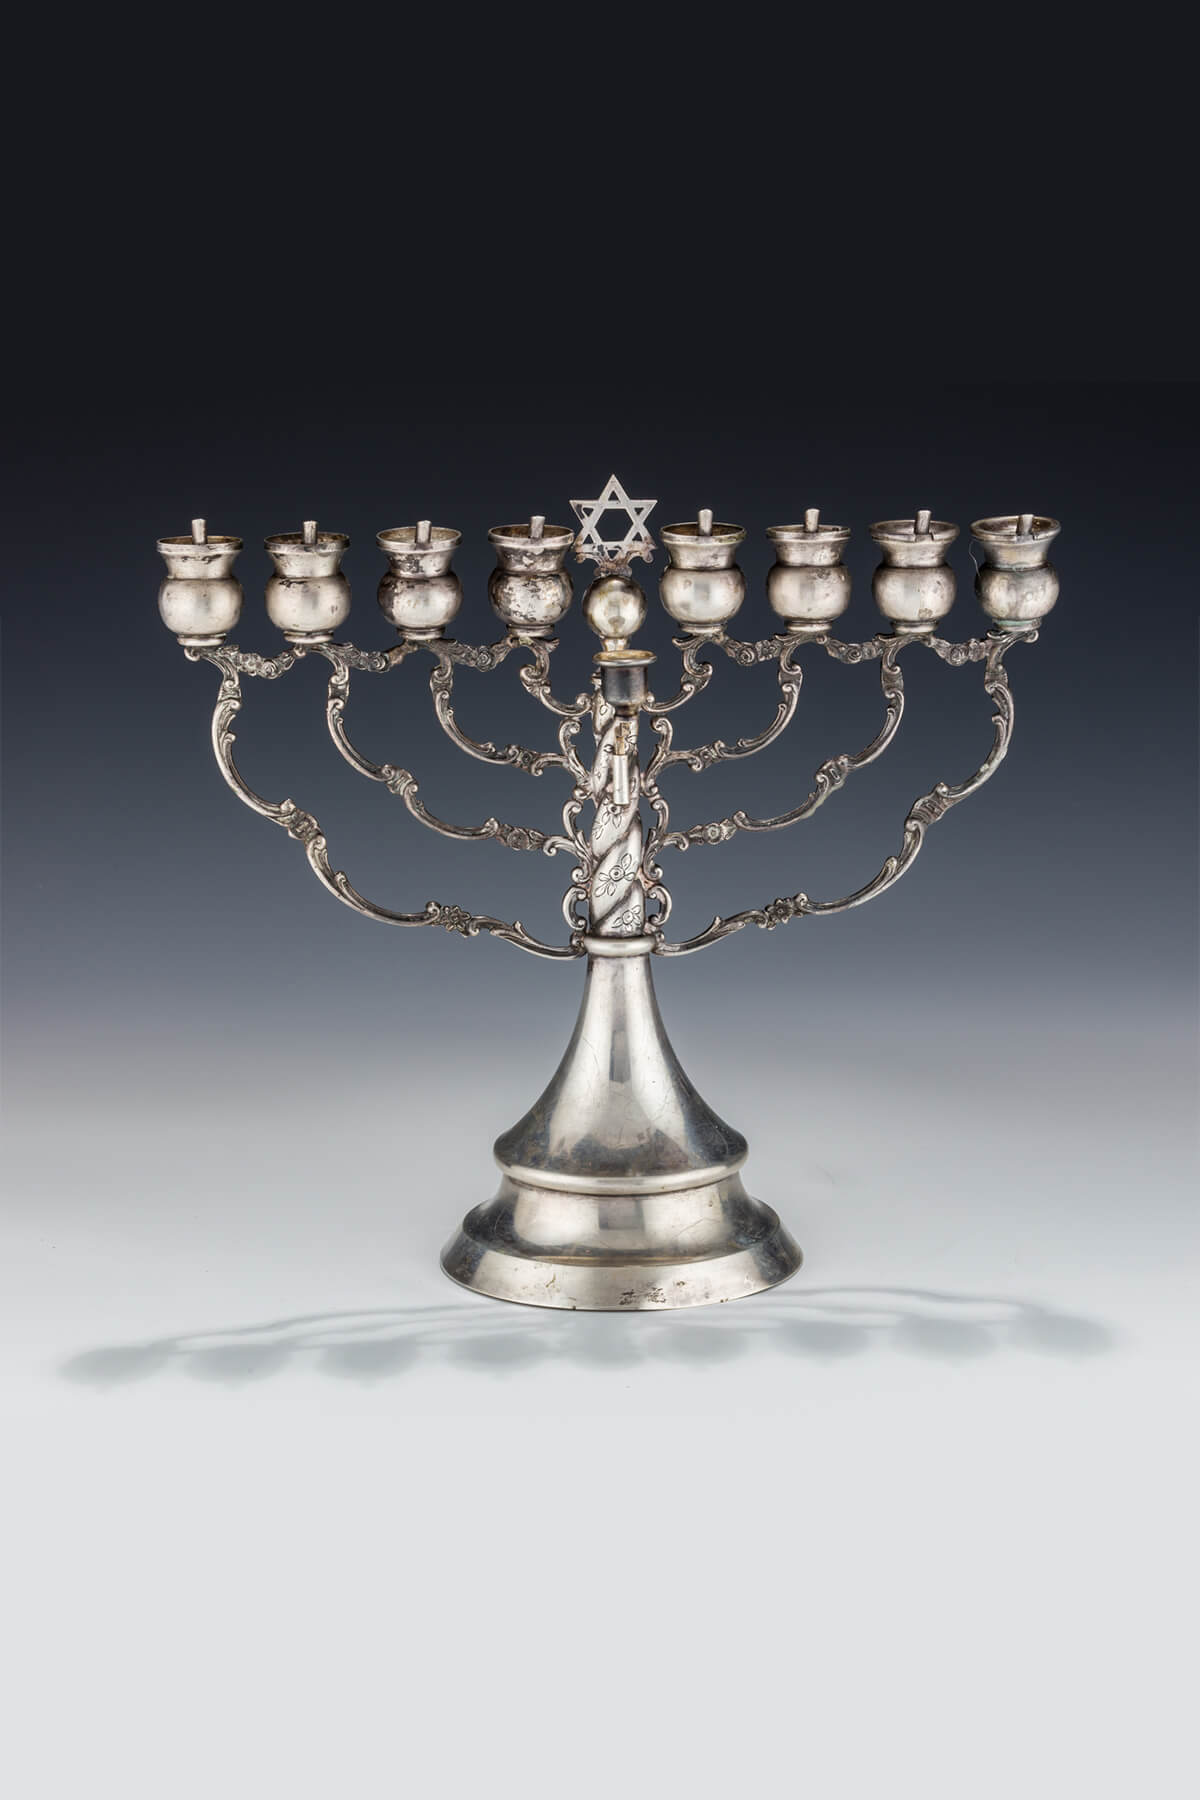 074. A Large Silver Chanukah Menorah by Posen